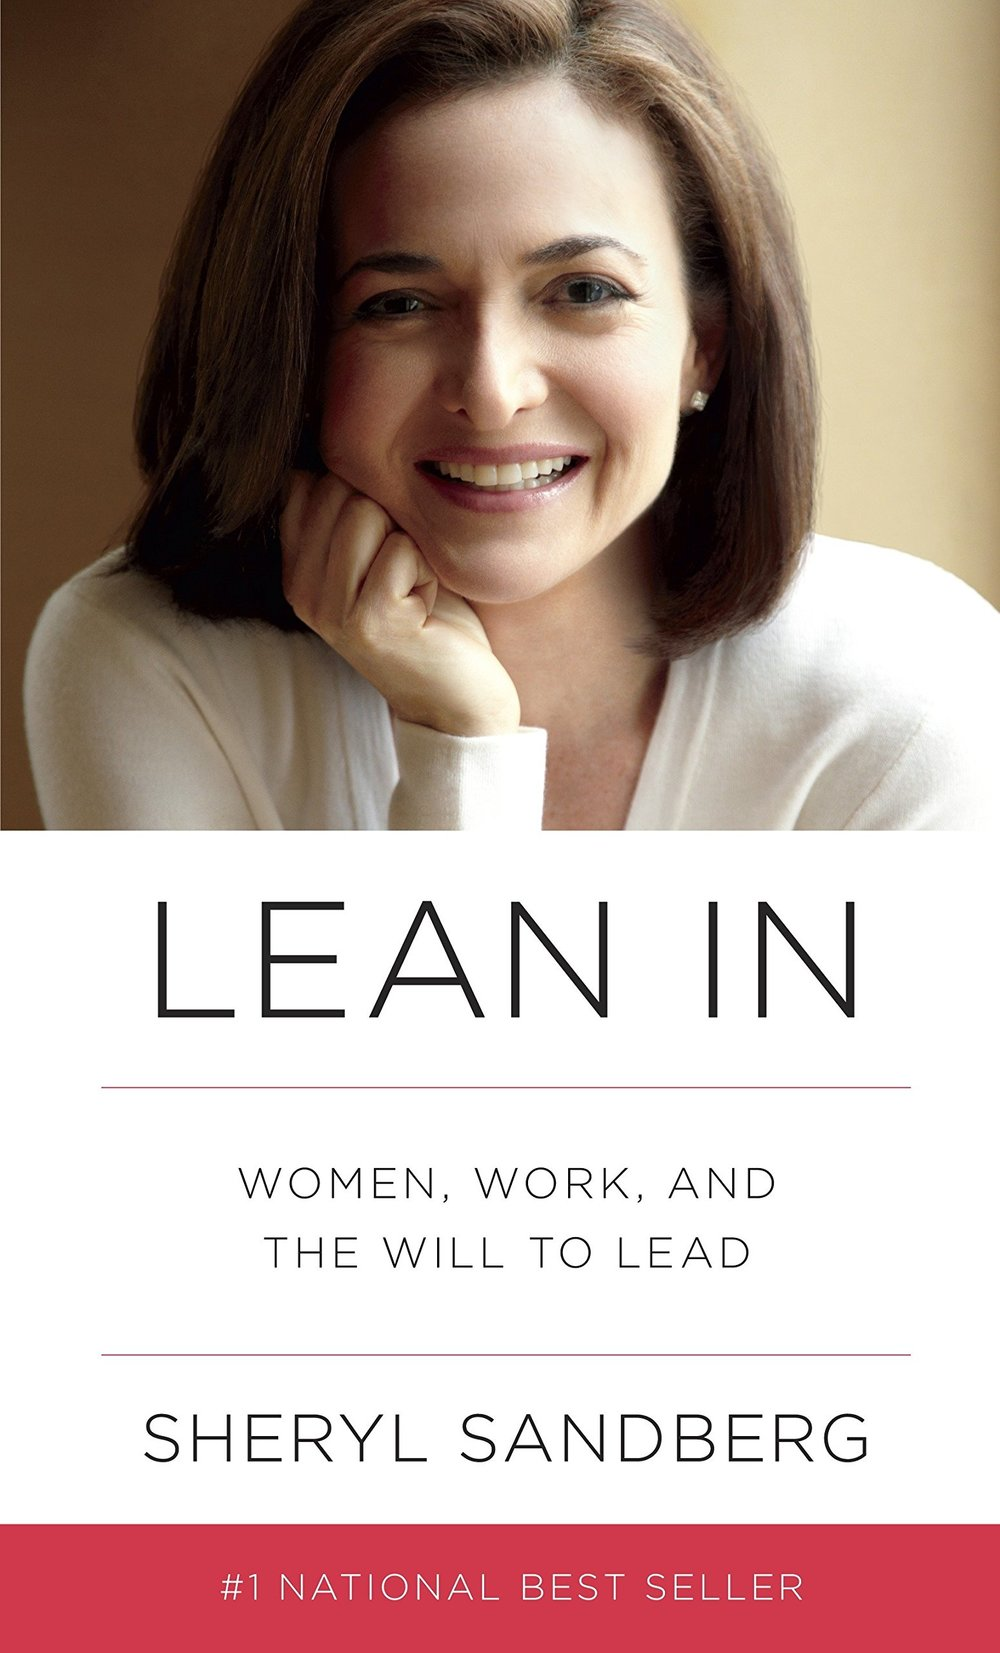 Book Discussion: Lean In by Sheryl Sandberg - We will be discussing this article in our next event this Friday.